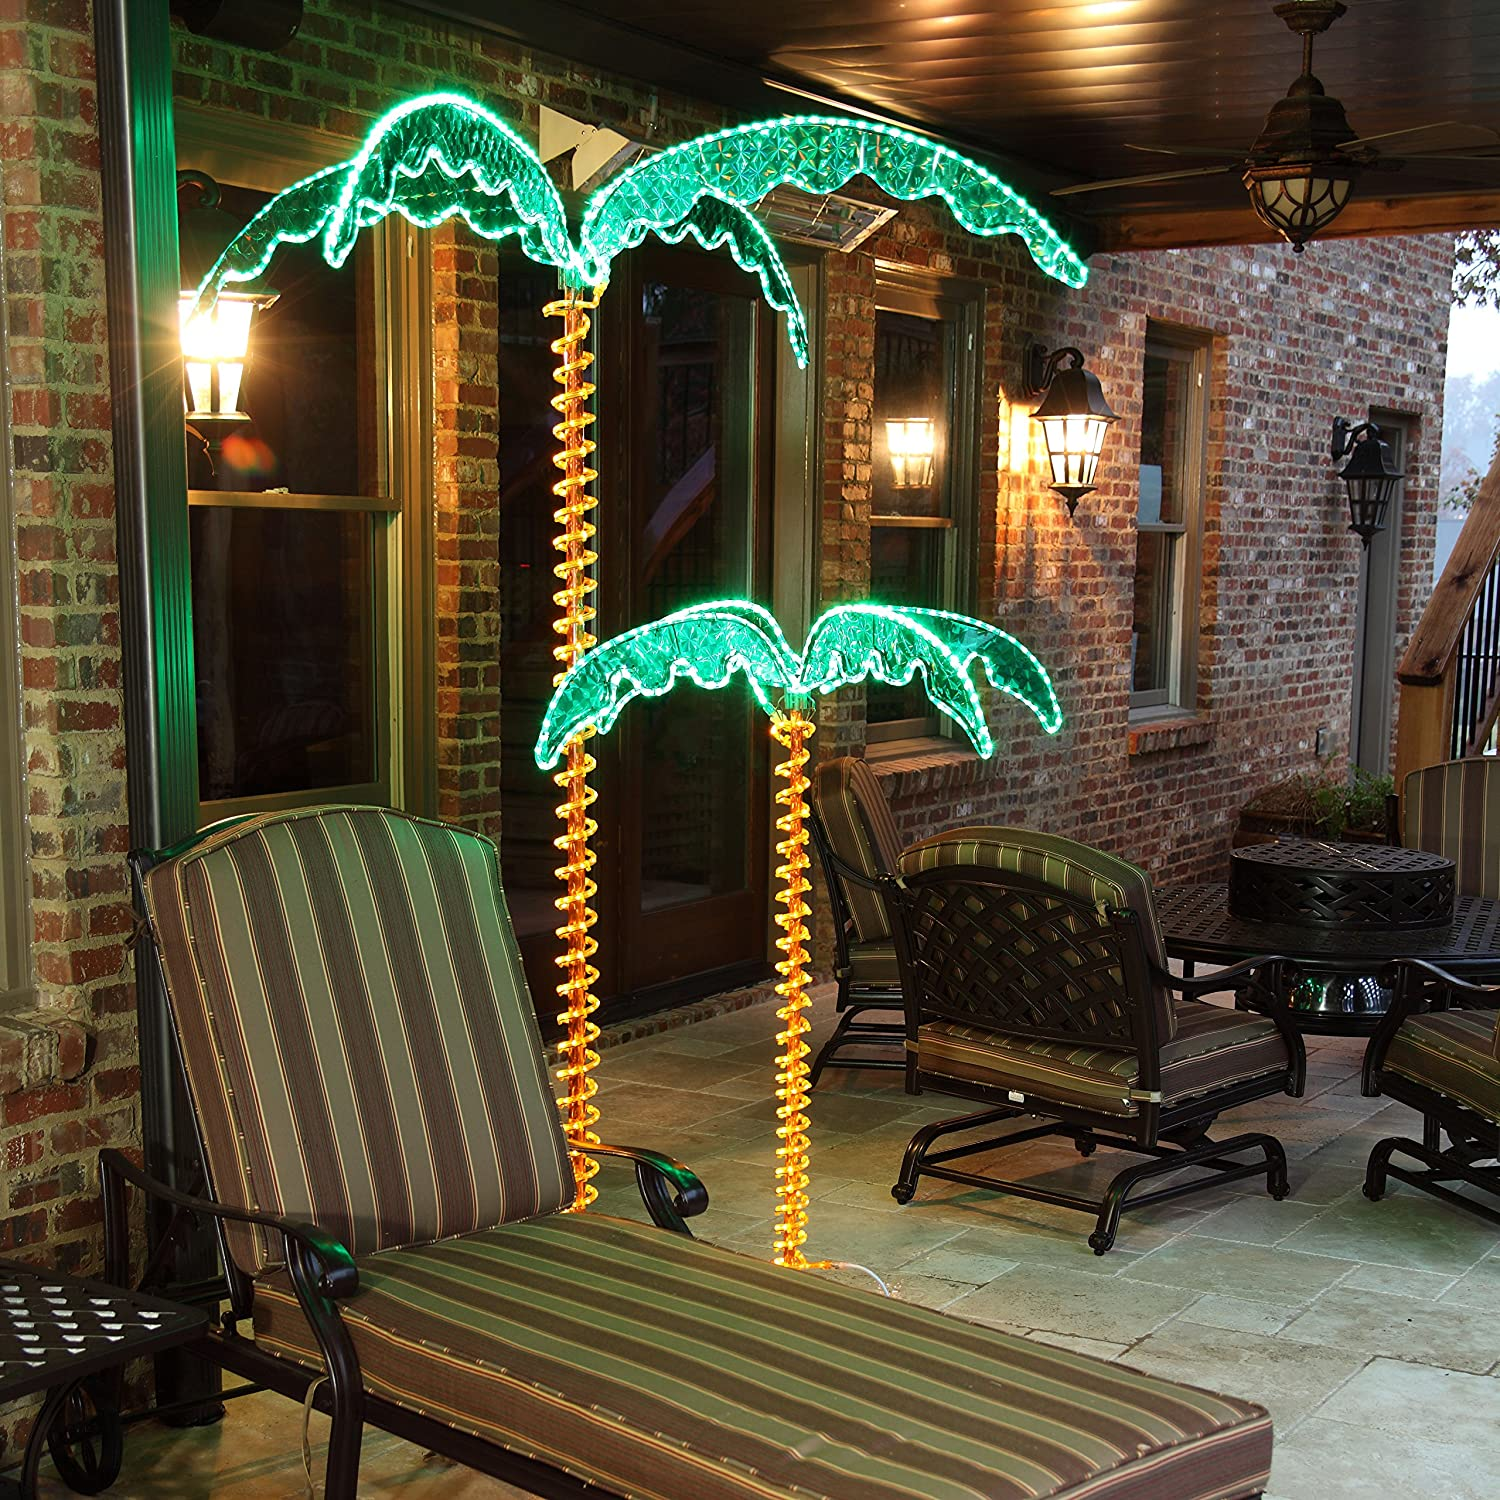 Amazon.com: 7u0027 Deluxe Tropical LED Rope Light Palm Tree With Lighted  Holographic Trunk And Fronds: Home U0026 Kitchen